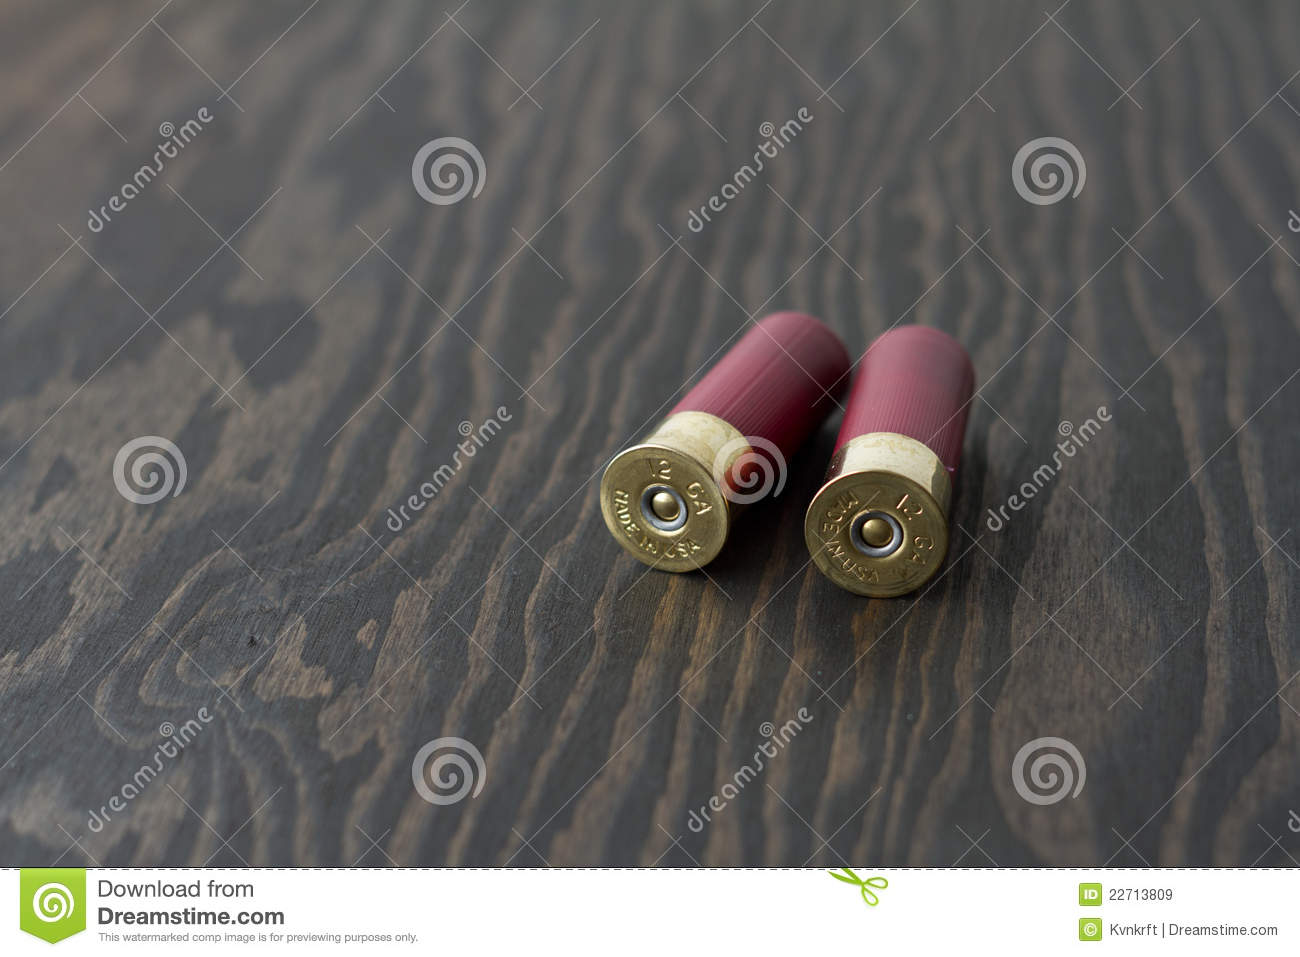 shotgun shells background - photo #39